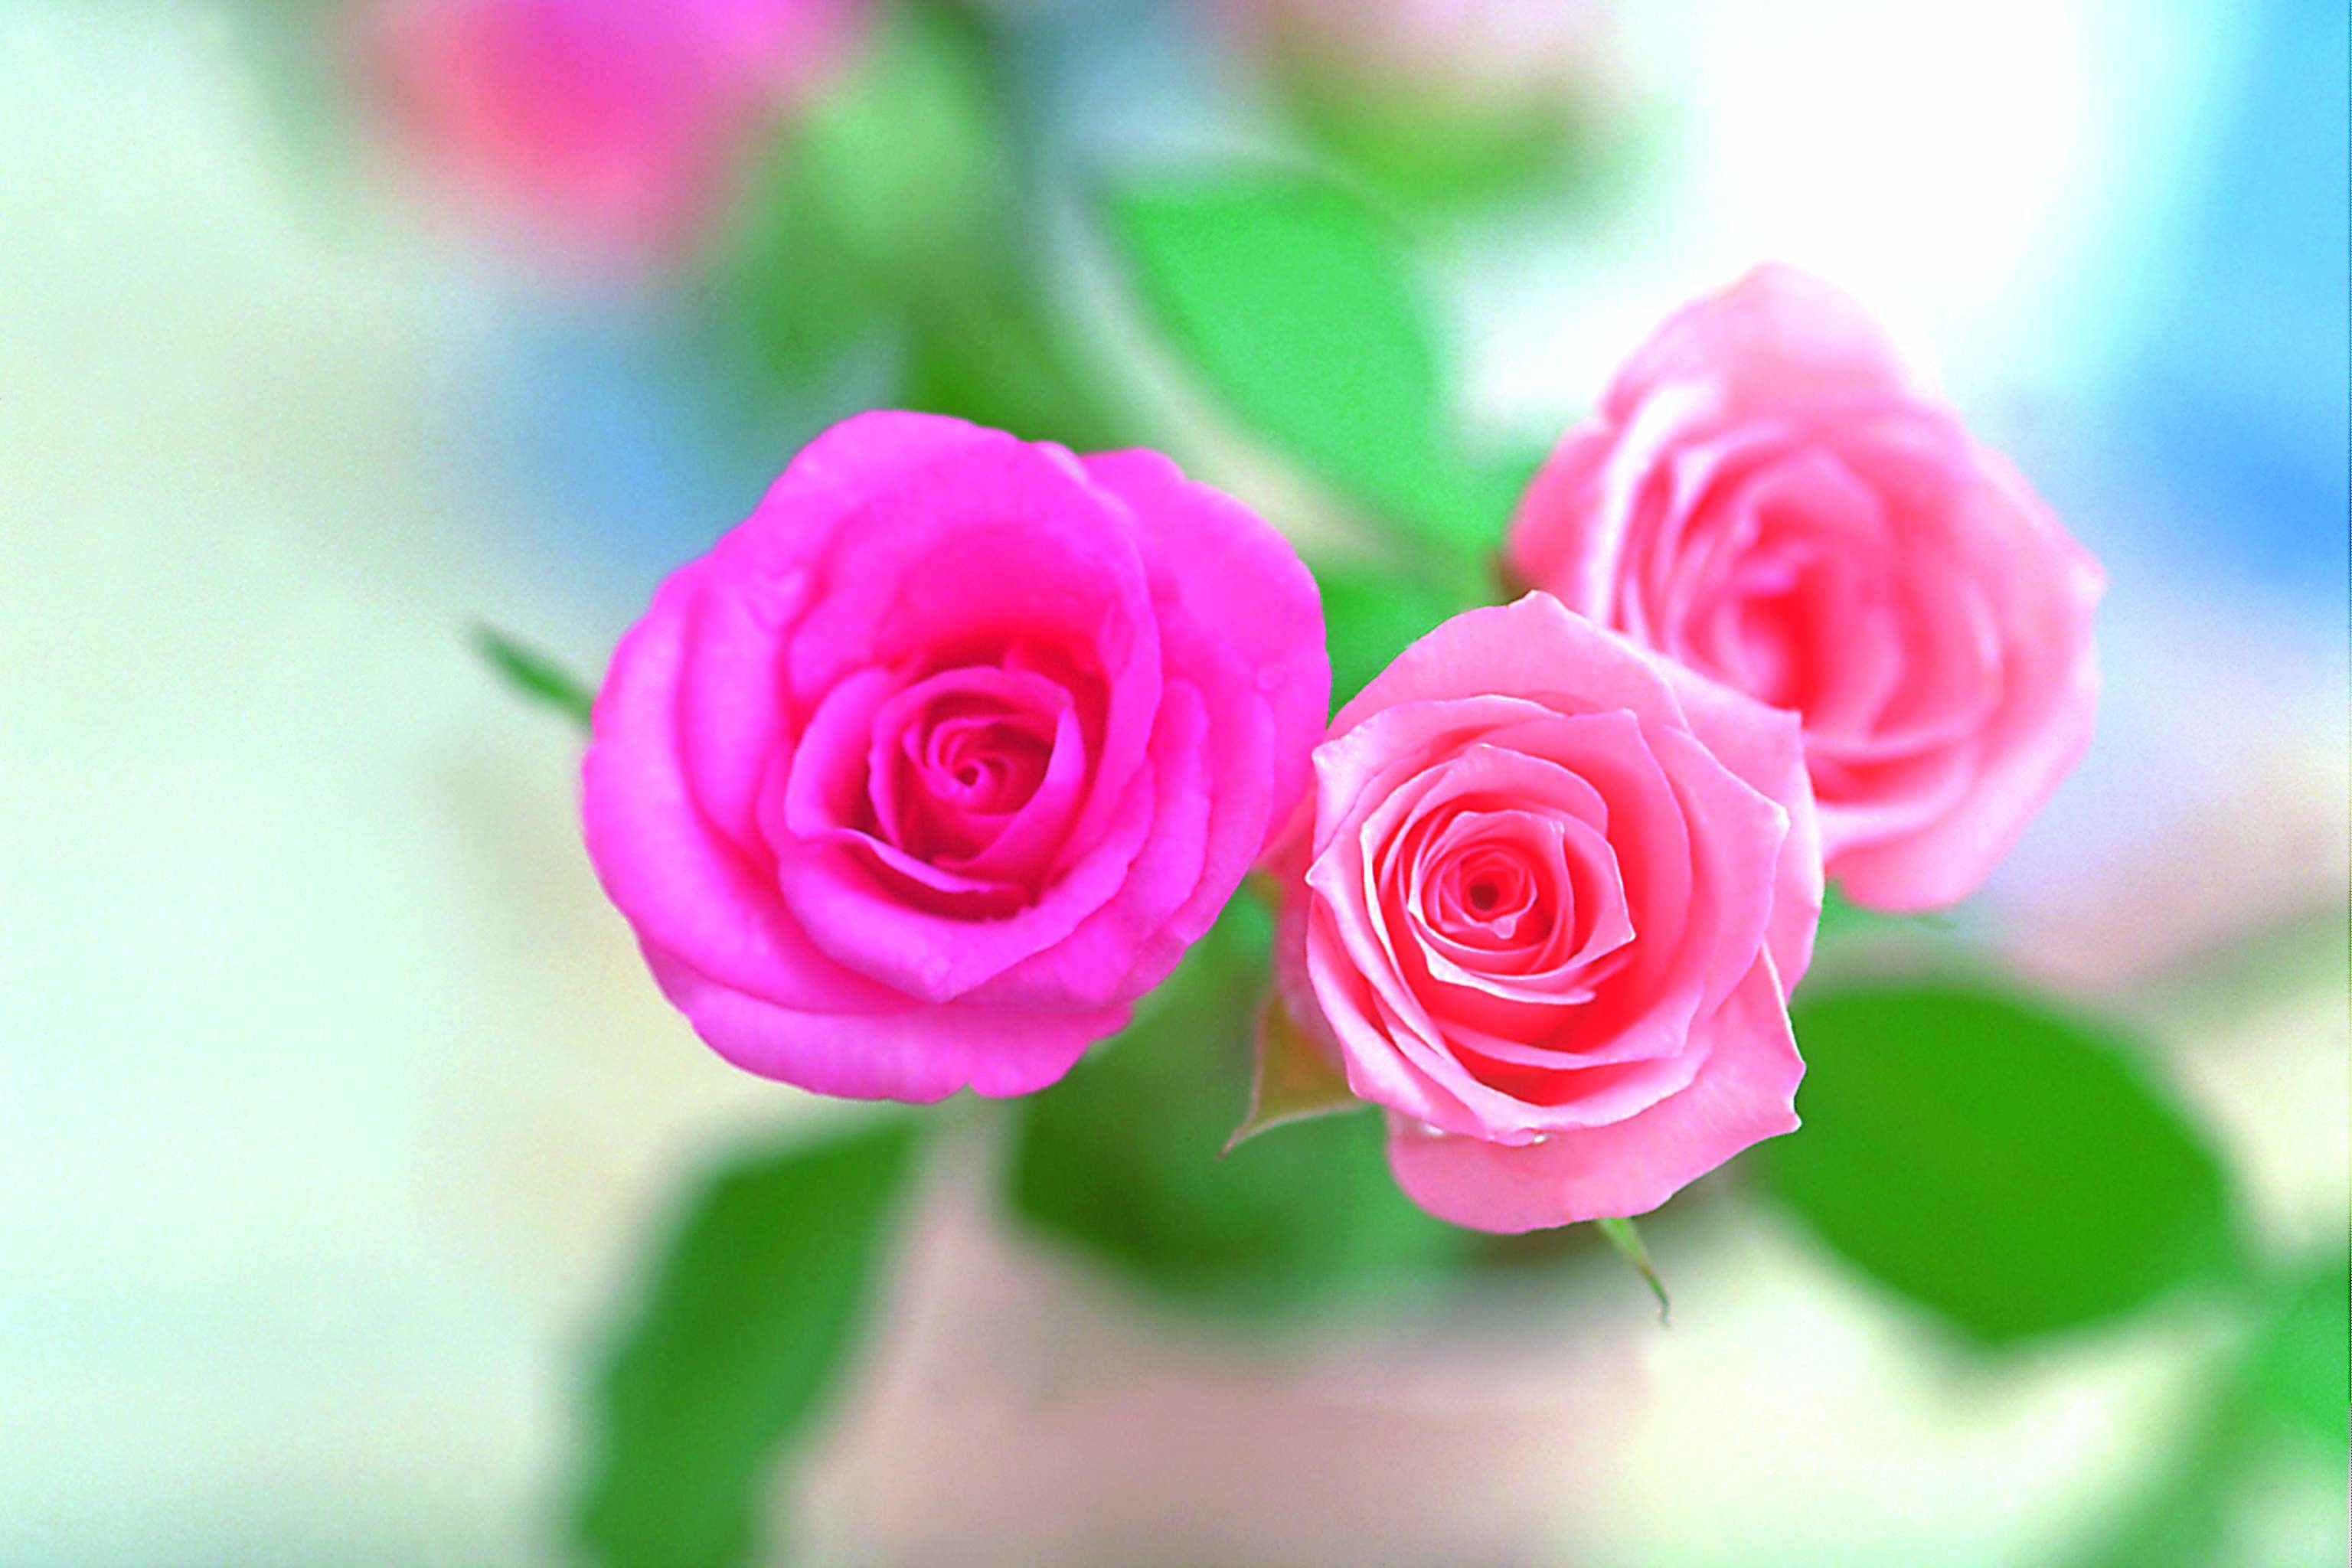 Rose flower wallpaper hd wallpapertag - Pink rose hd wallpaper ...